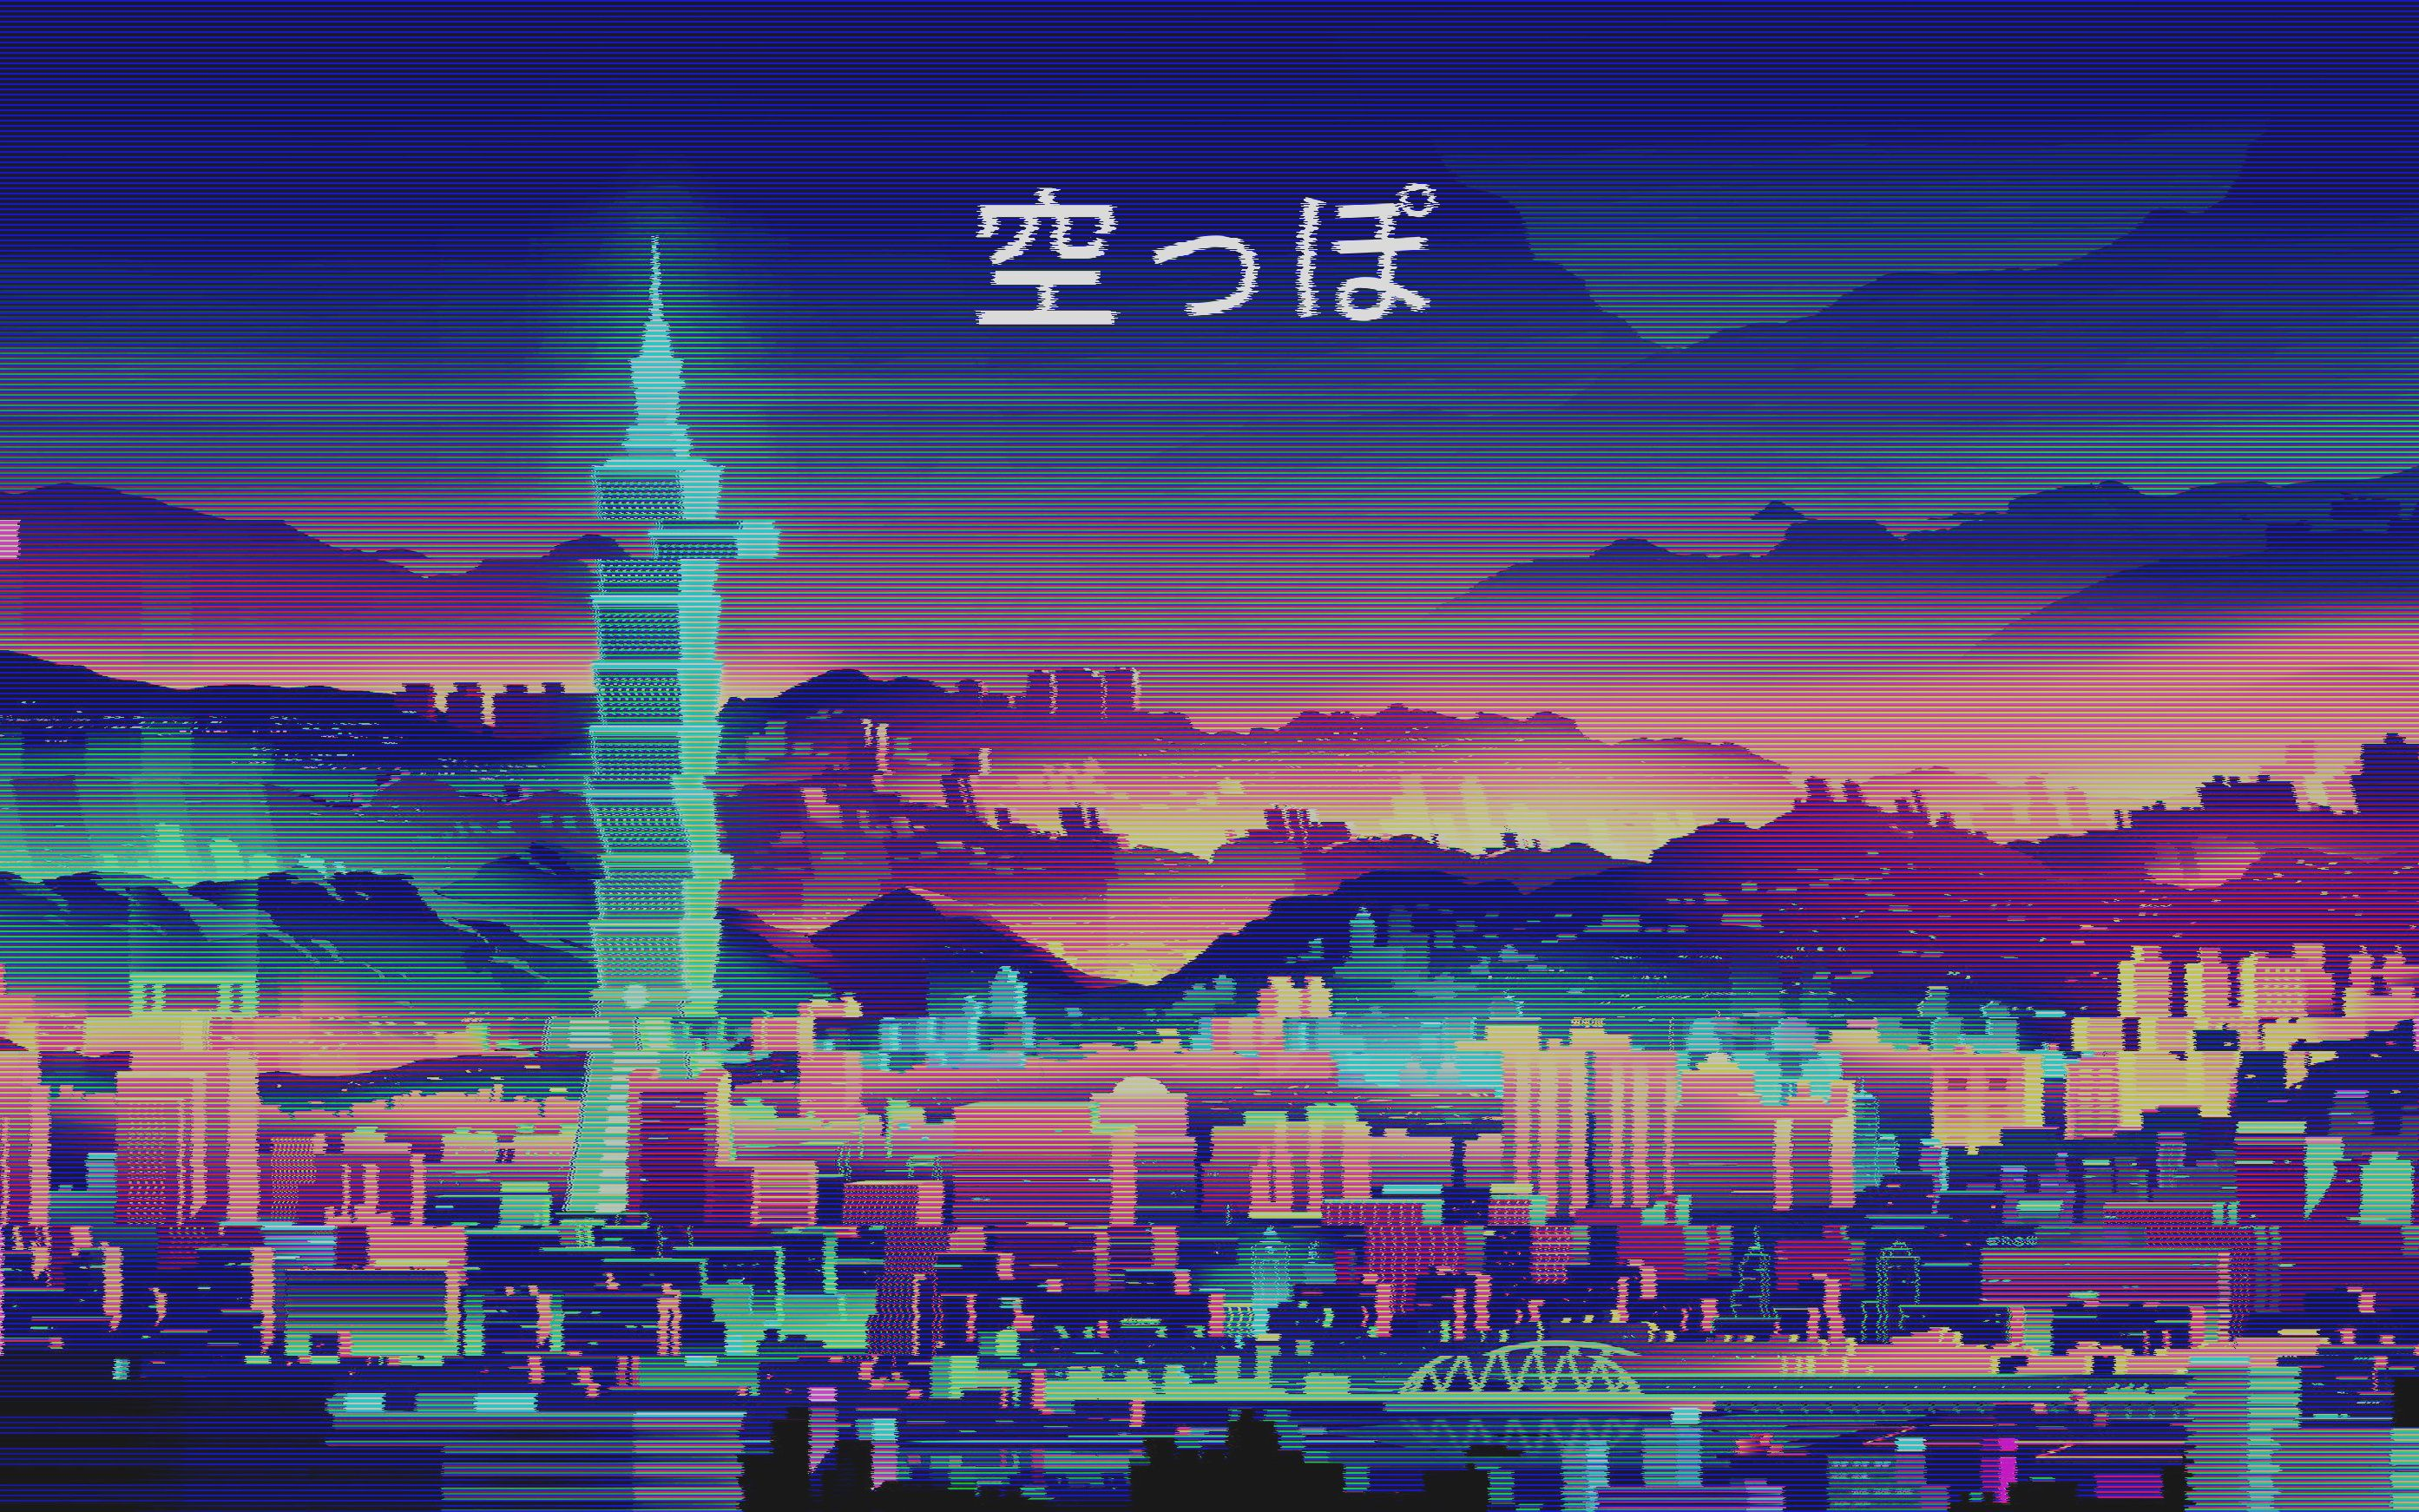 80s Aesthetic Wallpapers   Top 80s Aesthetic Backgrounds 2787x1742